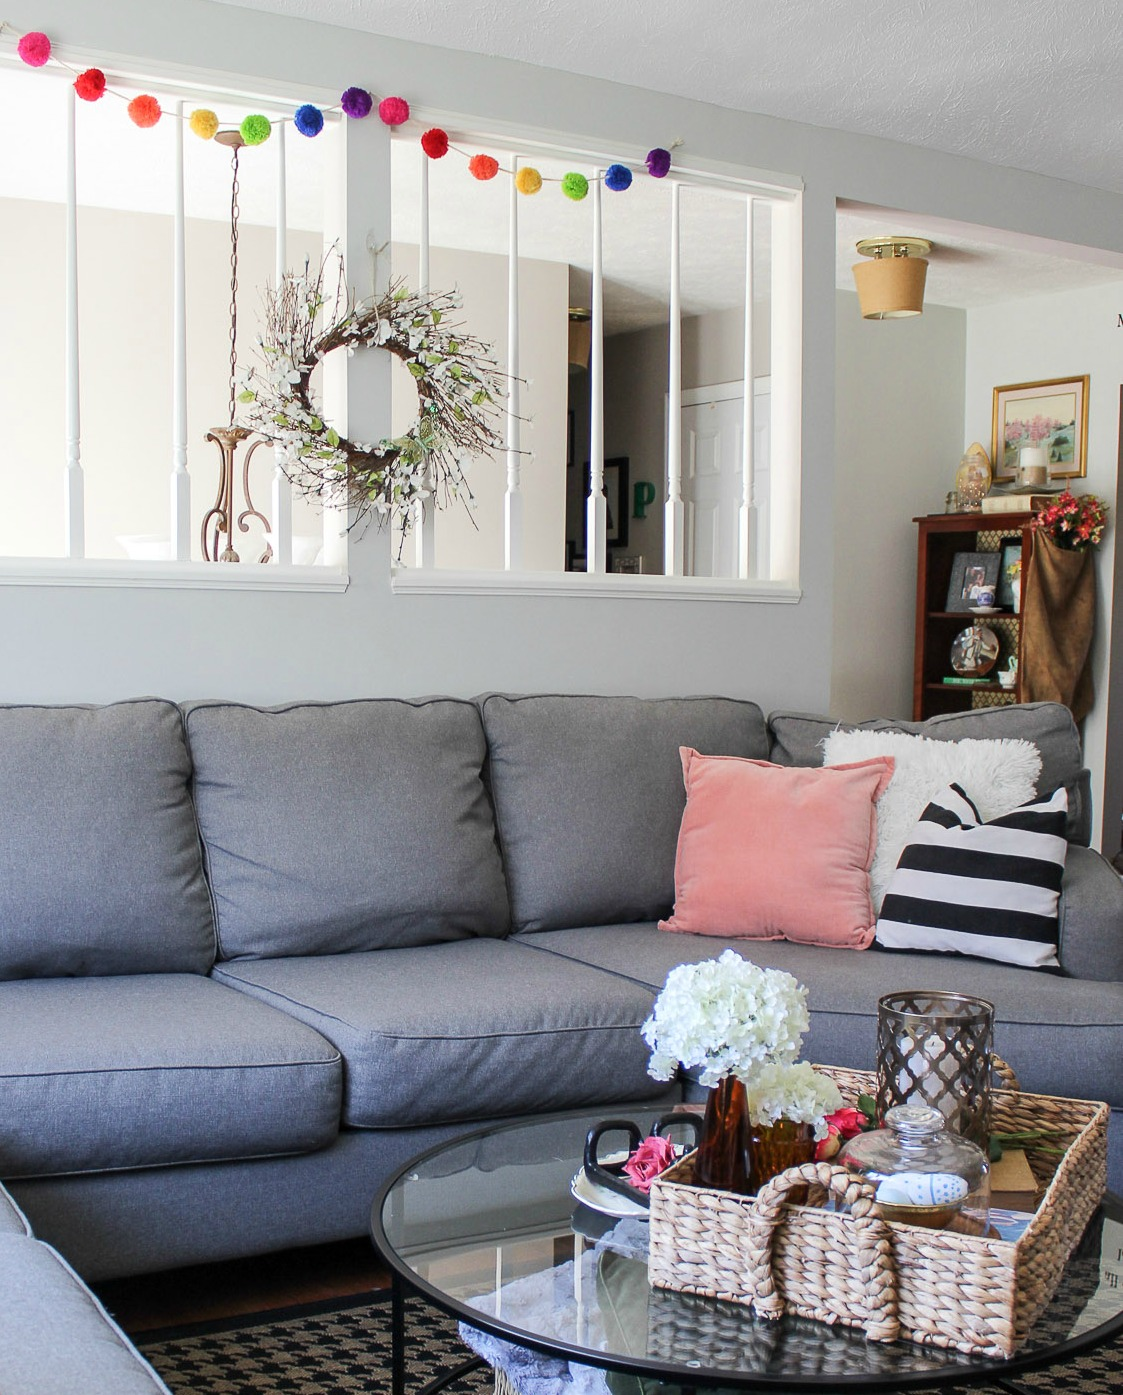 Spring decorating ideas | living room decor